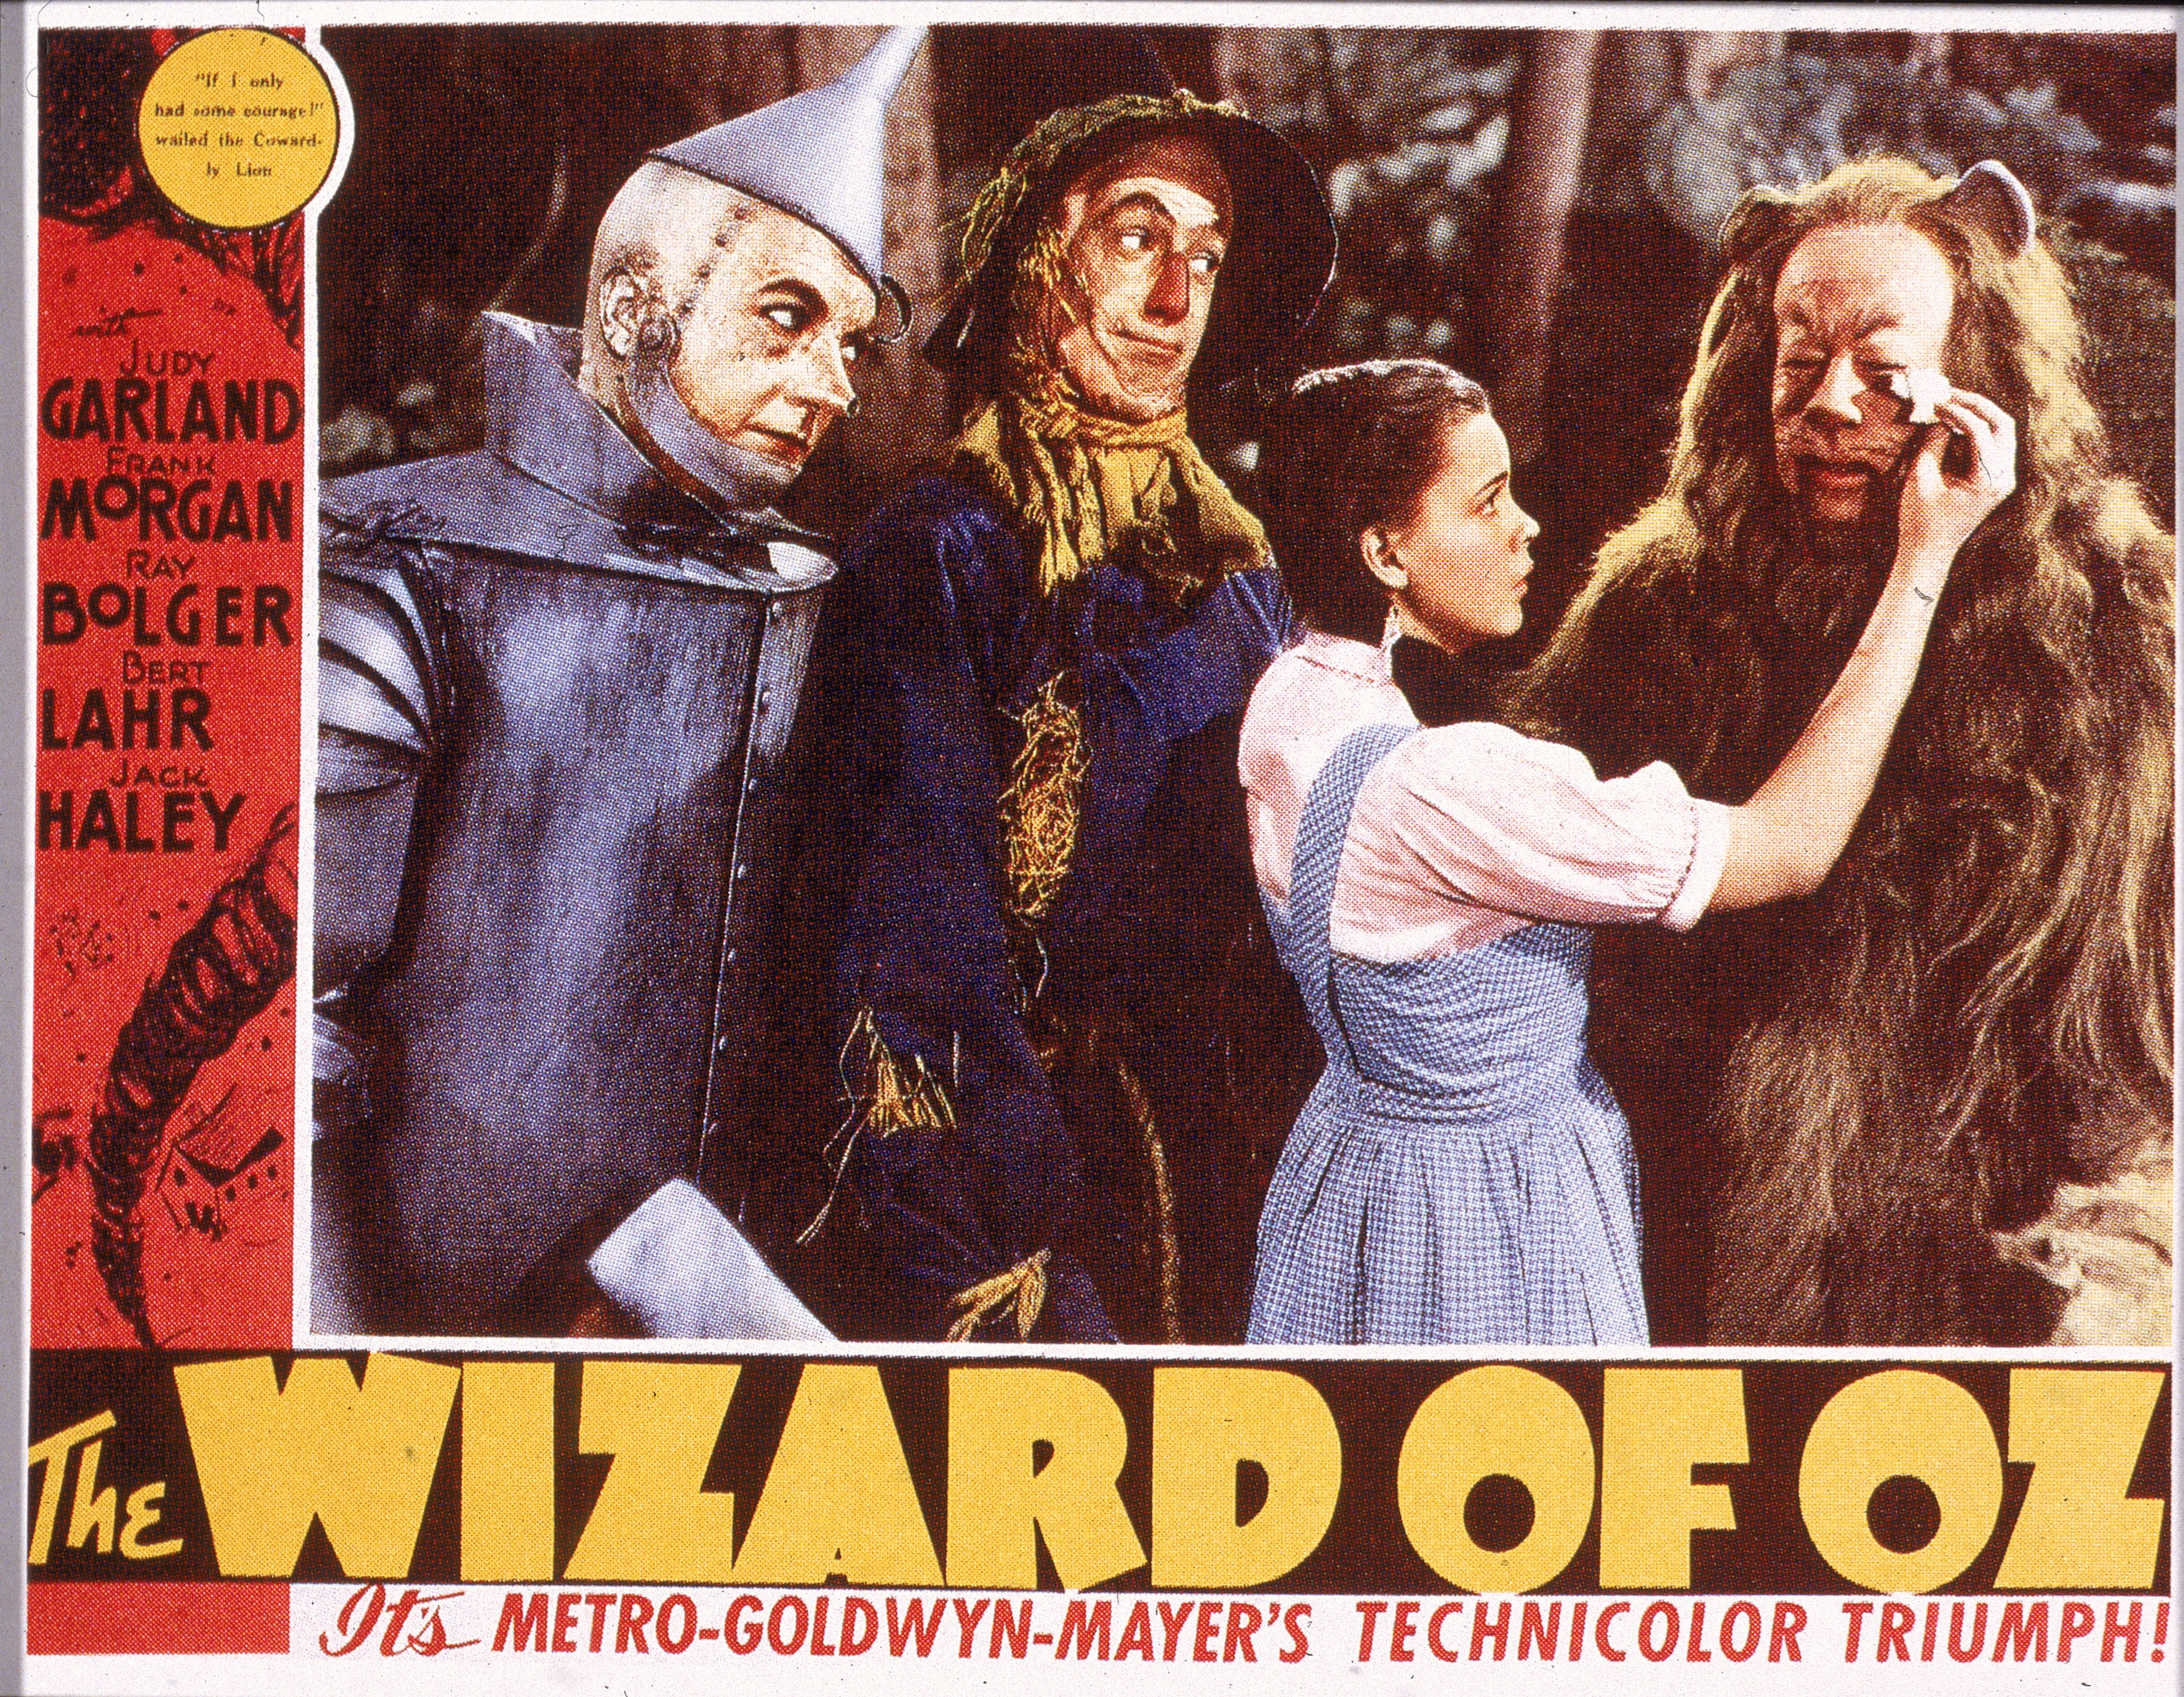 Lobby Card For 'The Wizard Of Oz'